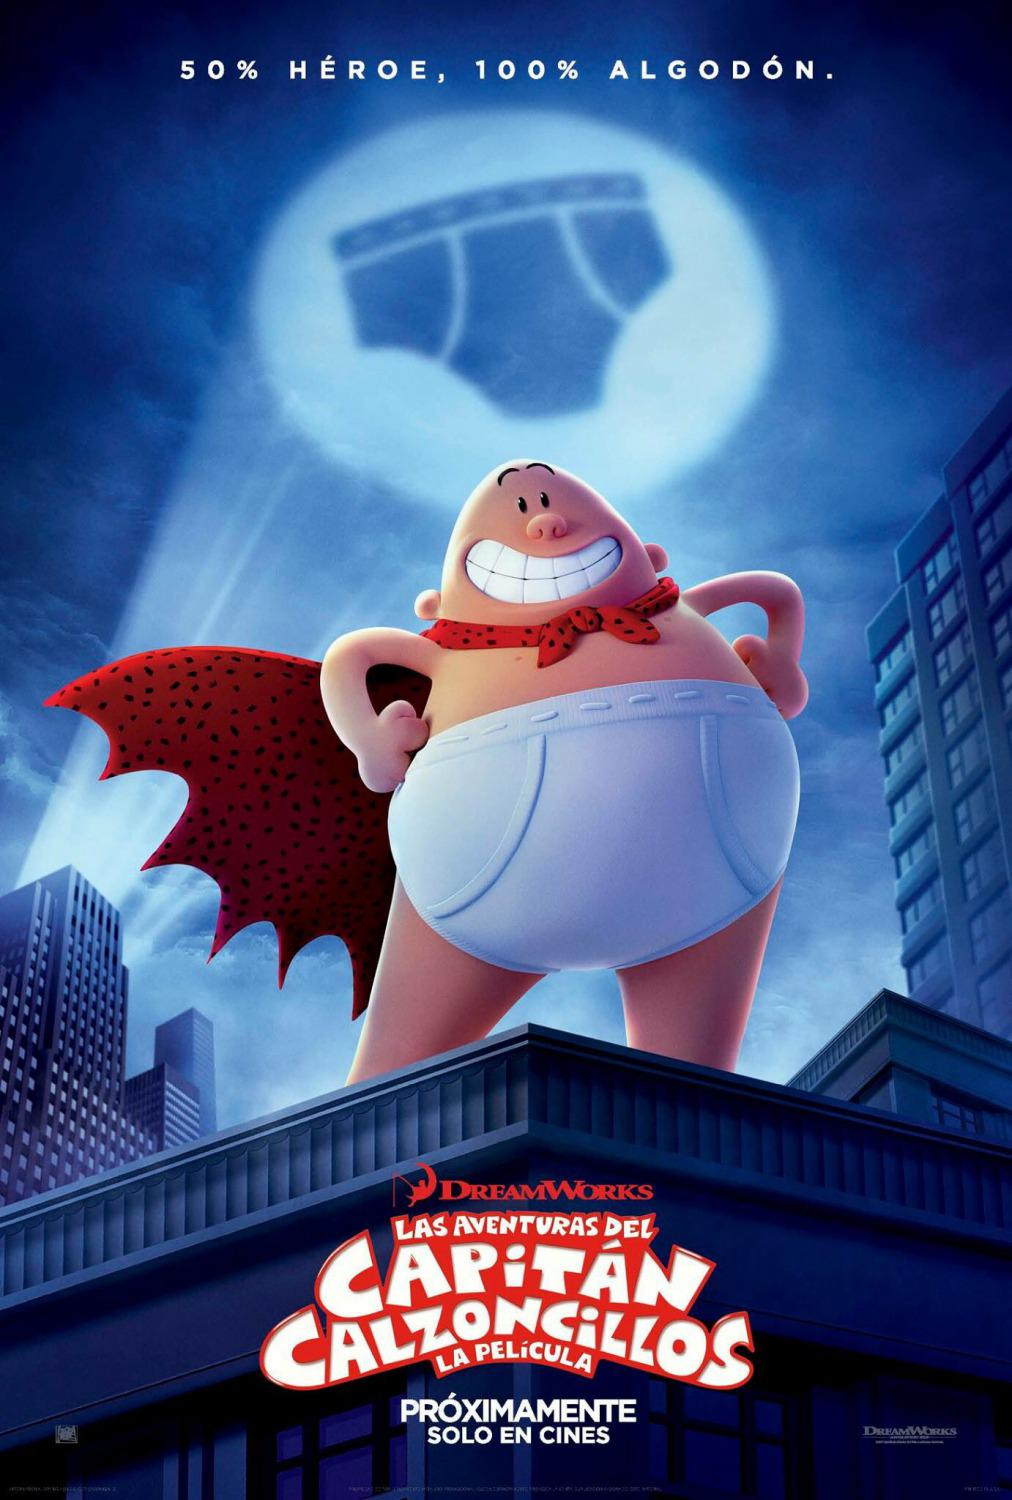 Captain Underpants - Capitan Mutanda - Dreamworks animated film - poster